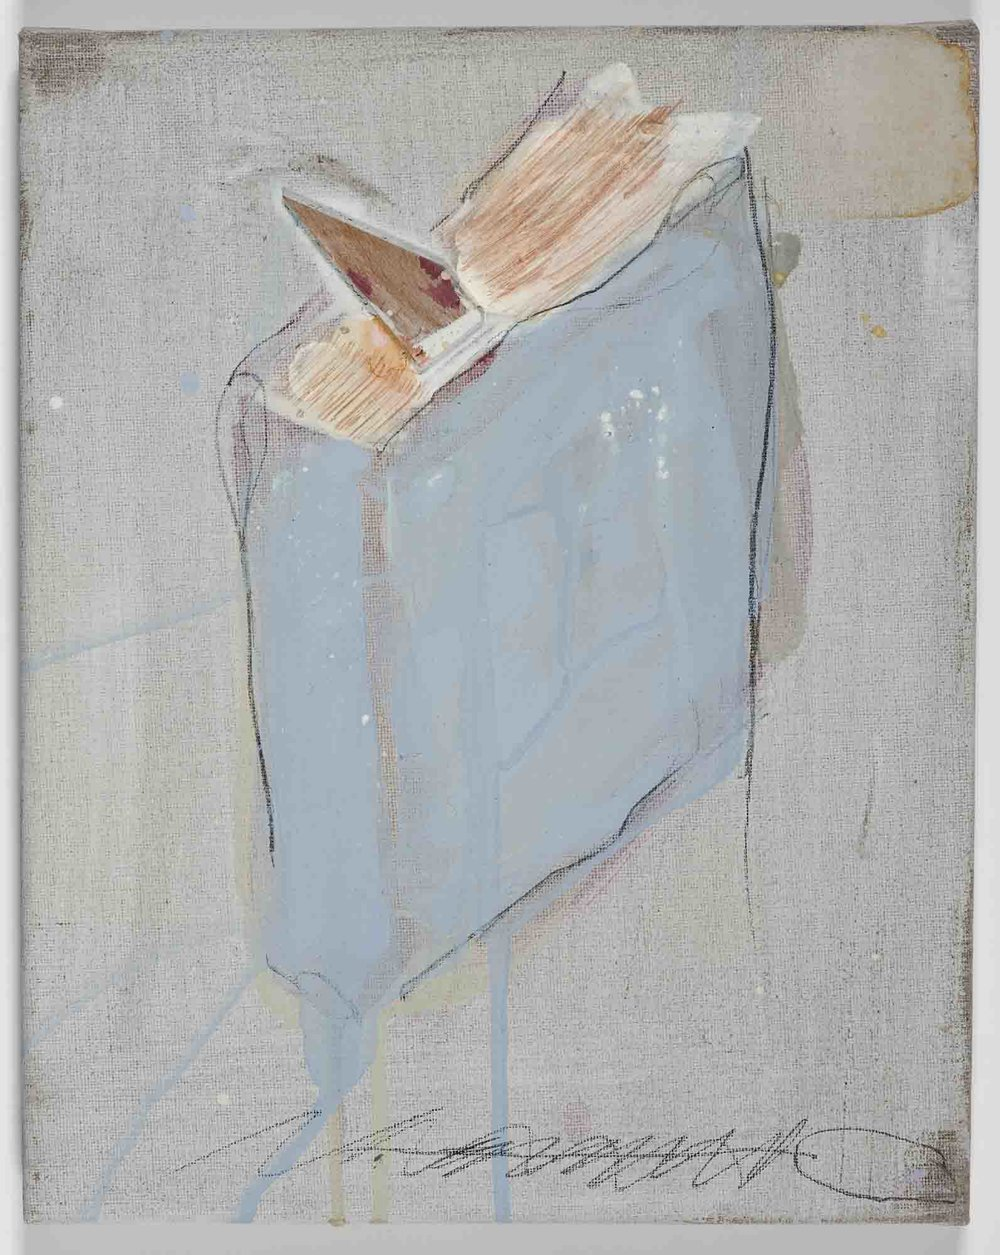 Matthew Bax,  Chapter 7 , 2011, acrylic, pencil, wax, binder, wood on linen, 30 x 30cm